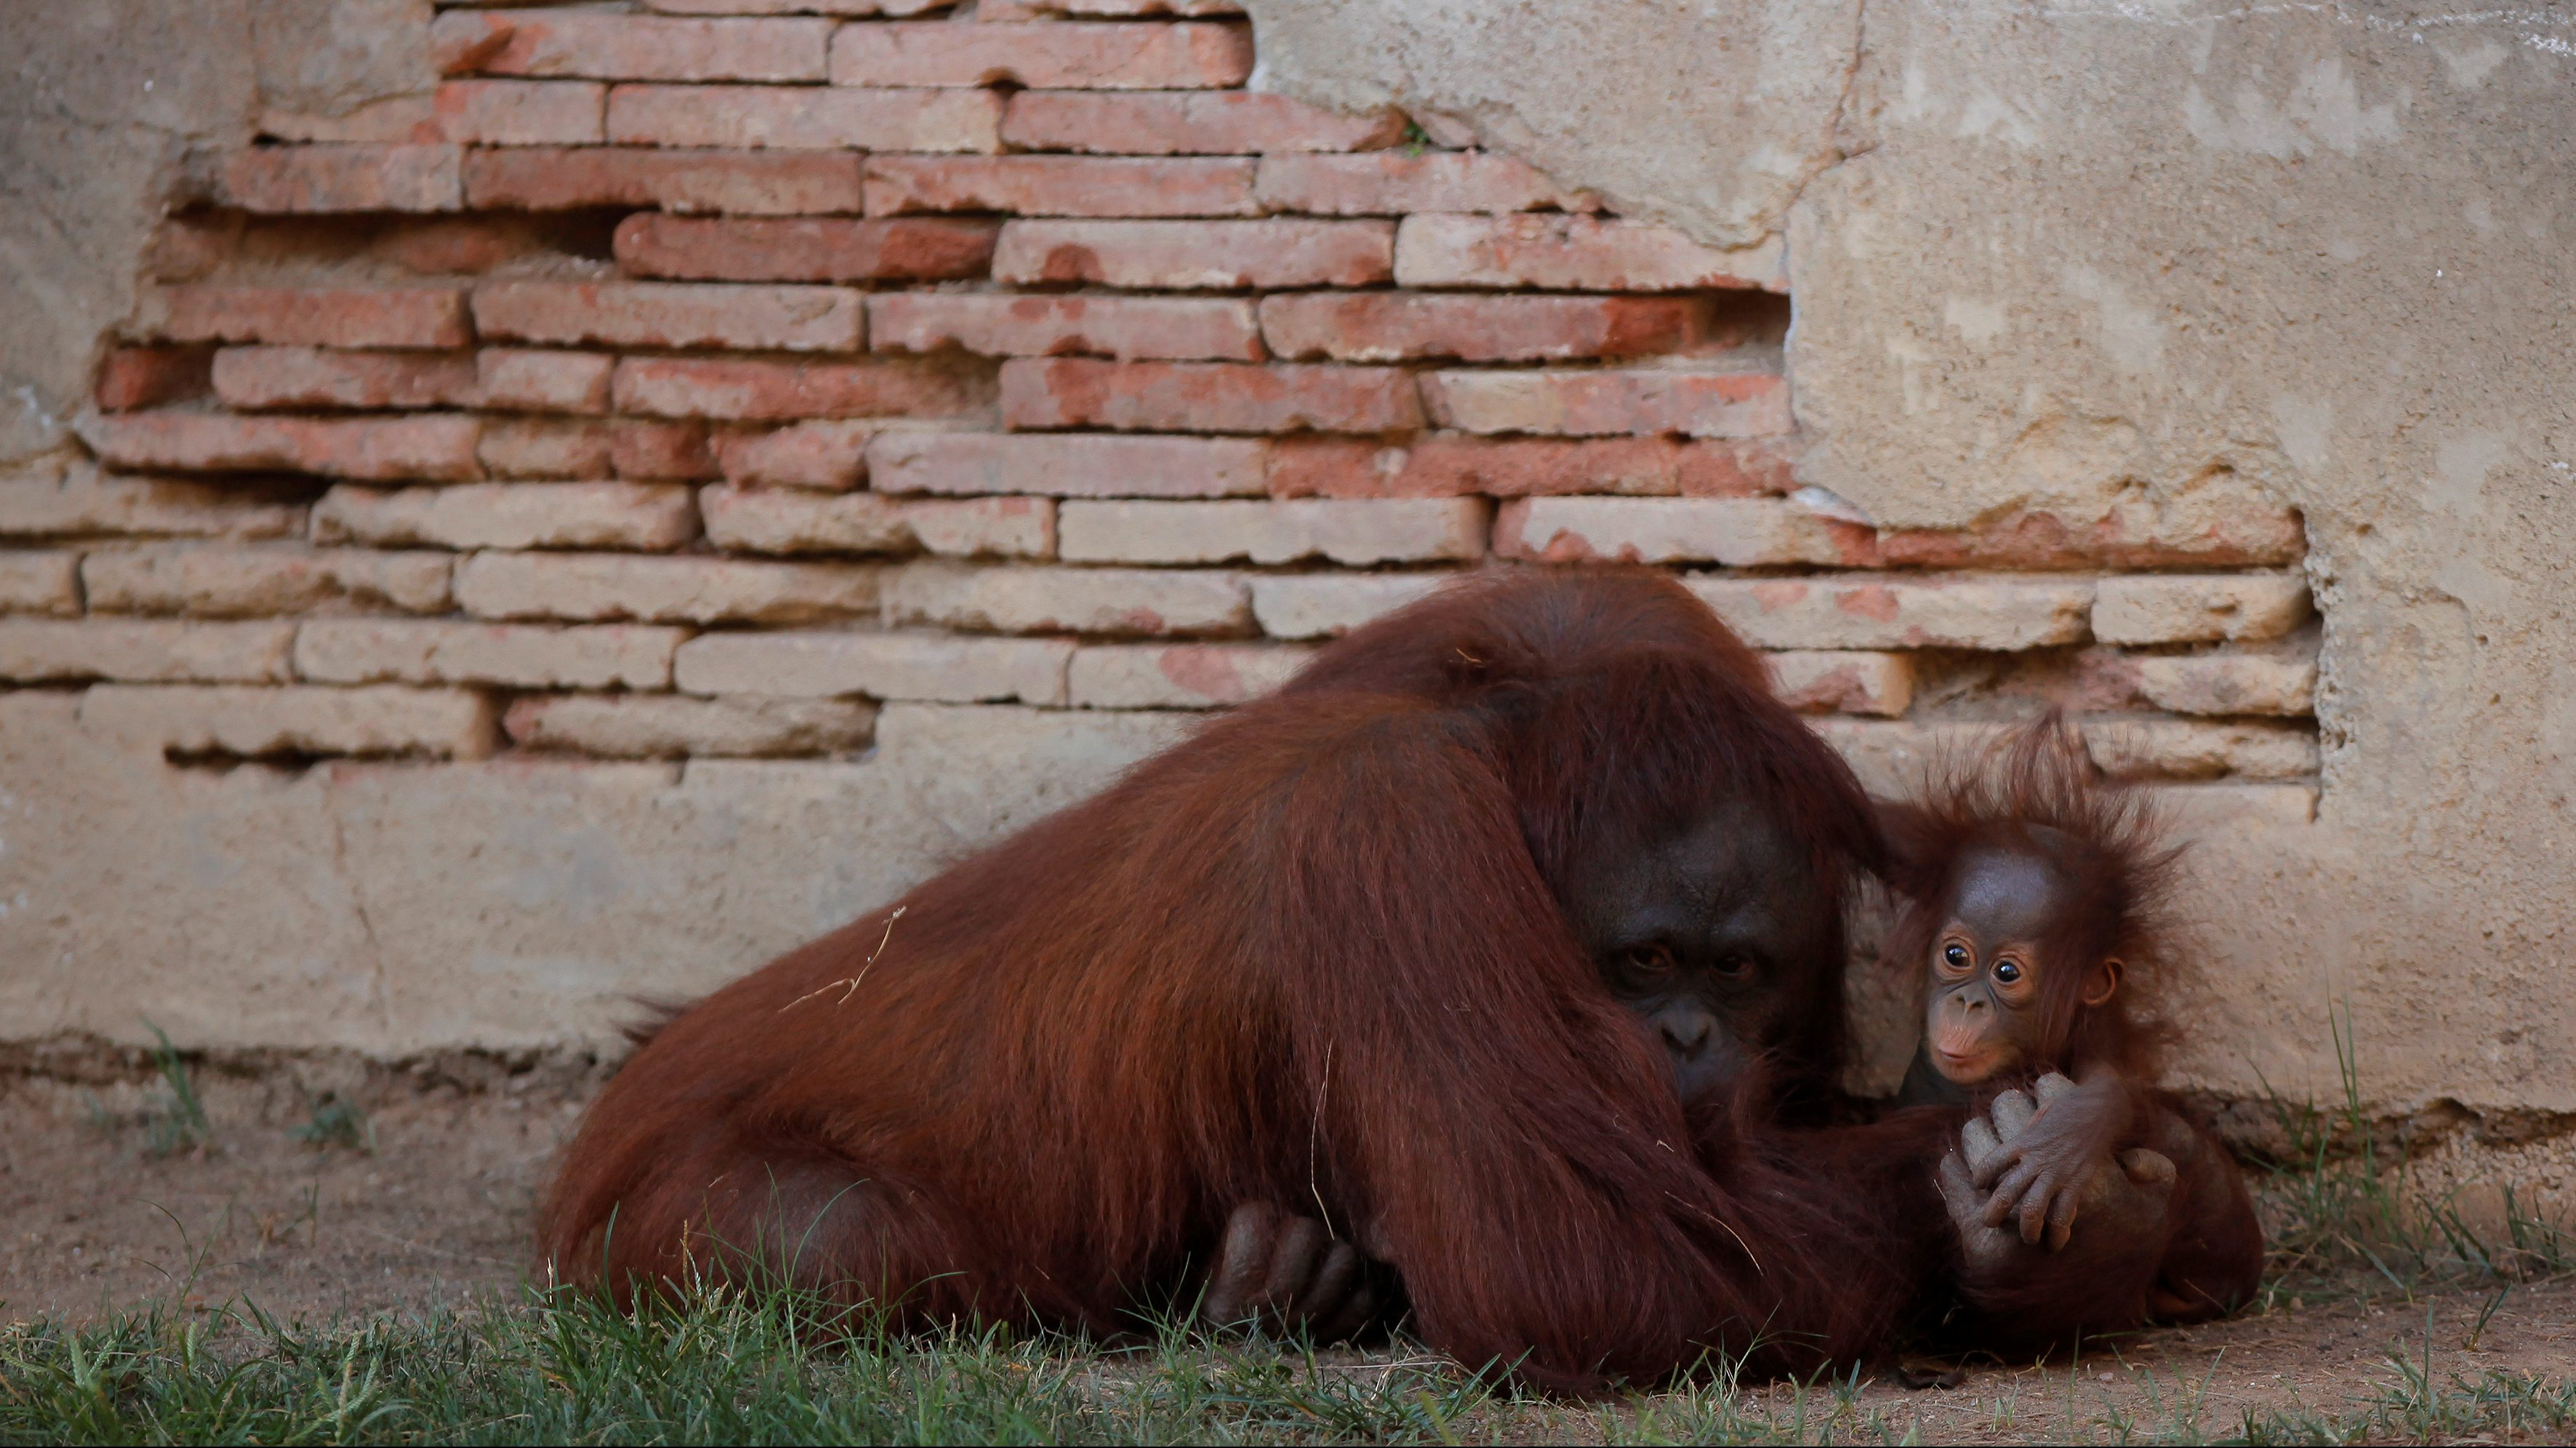 A five-month-old baby female Bornean orangutan (Pongo pygmaeus) plays with her mother Sulli at Bioparc Fuengirola in Fuengirola, near Malaga, southern Spain, September 12, 2016.